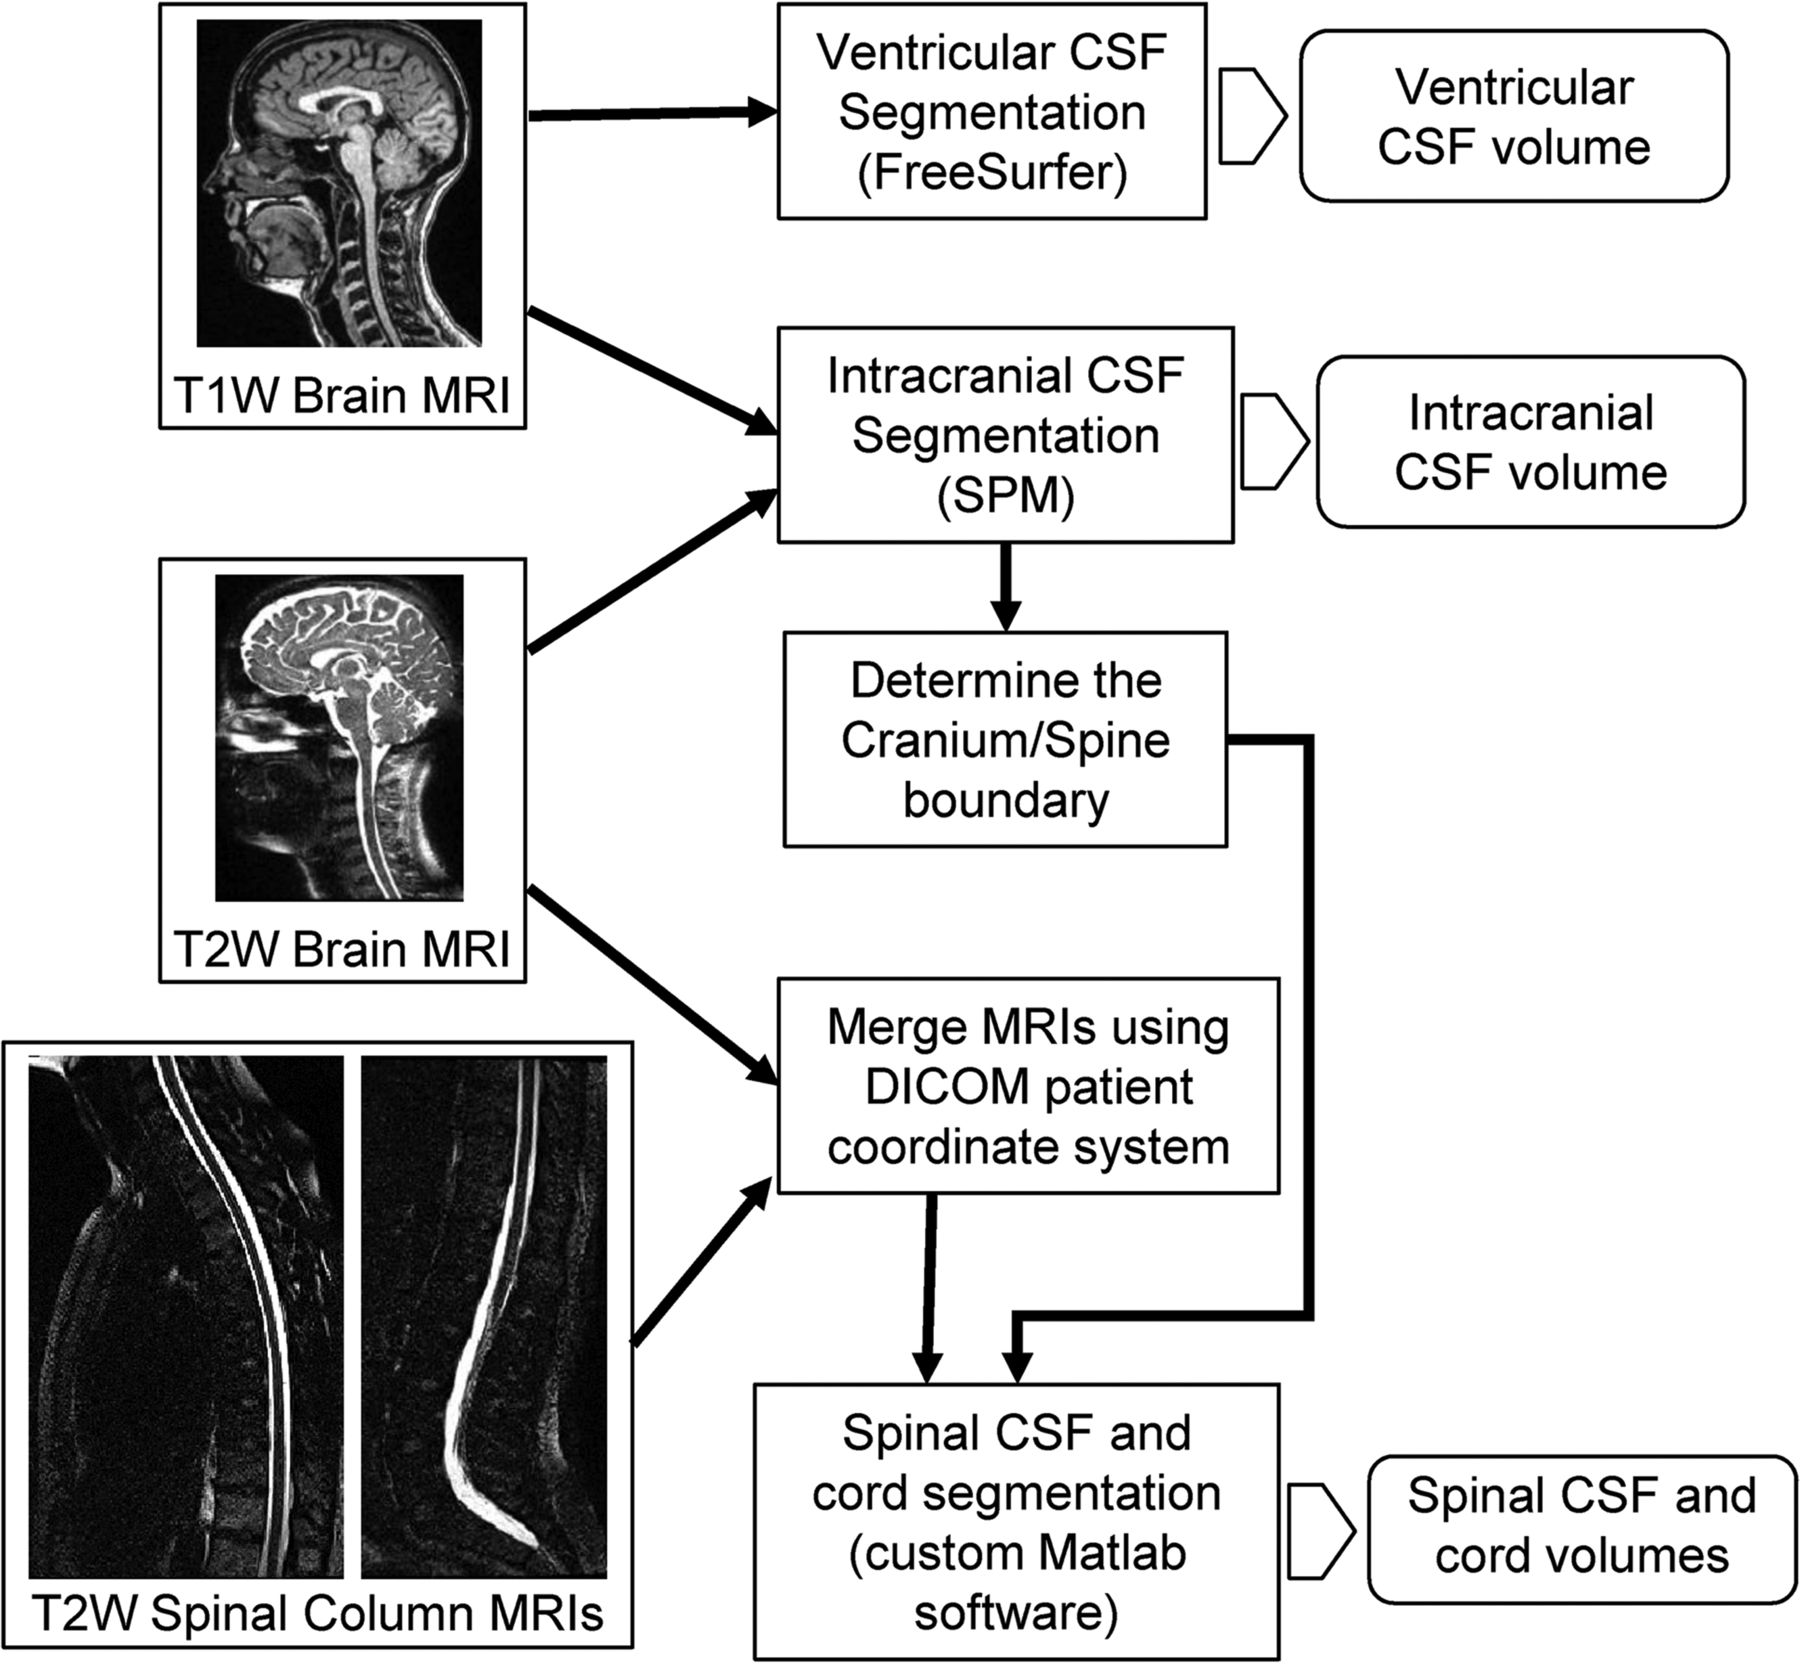 Automated Quantitation Of Spinal Csf Volume And Measurement Of